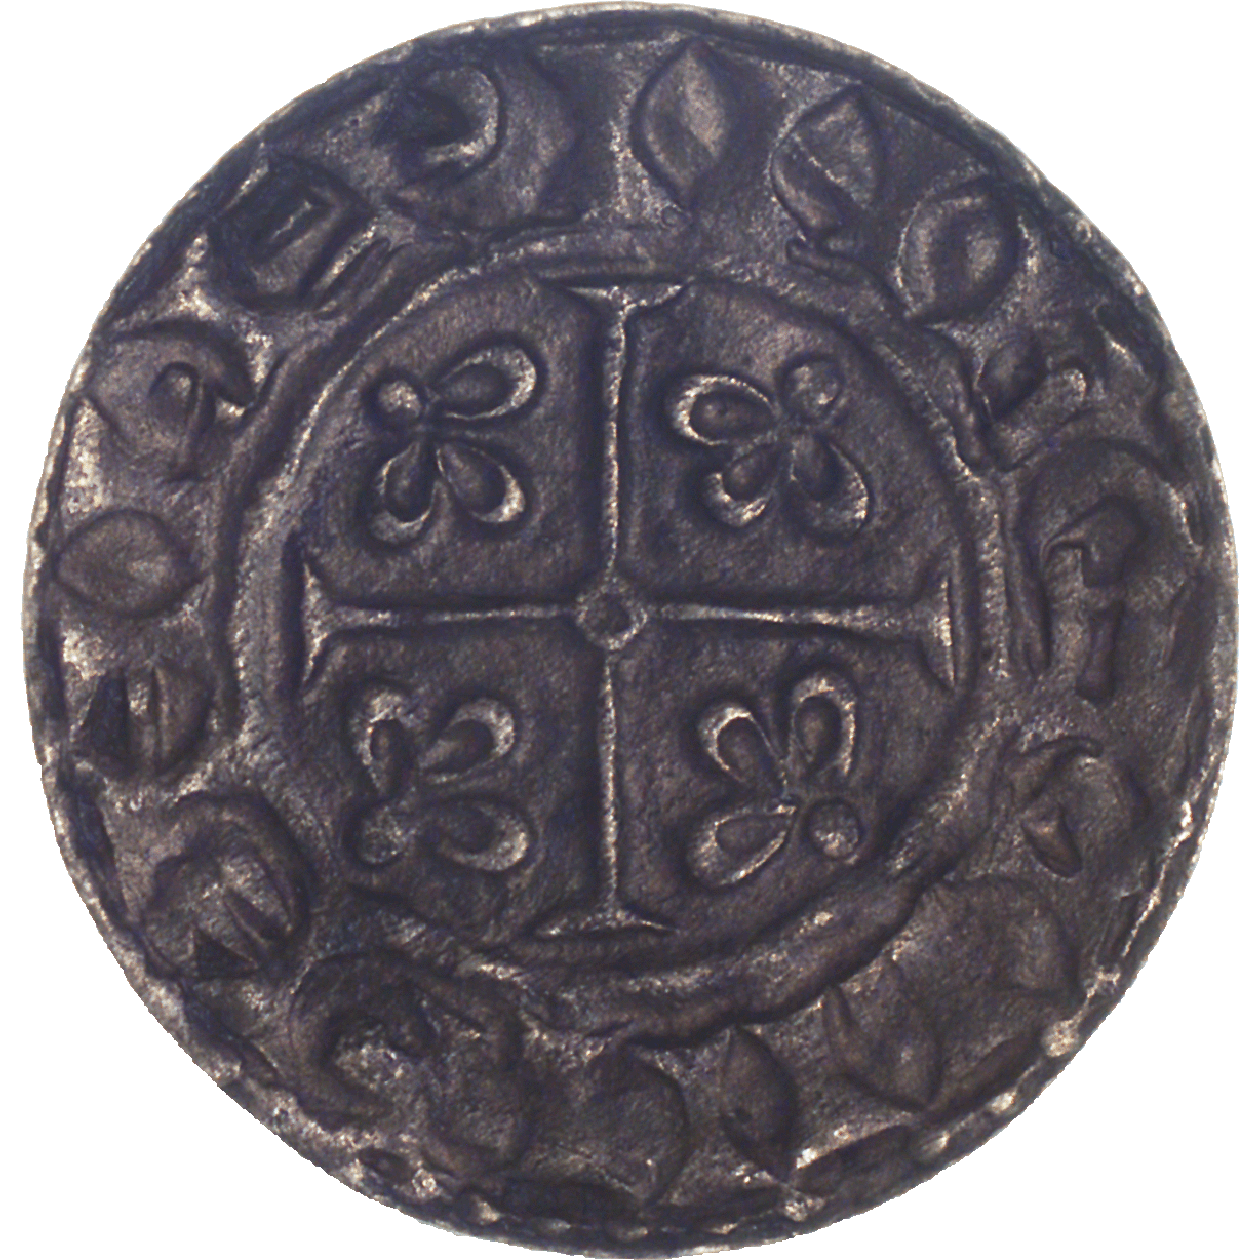 Kingdom of England, William I the Conqueror, Penny (reverse)